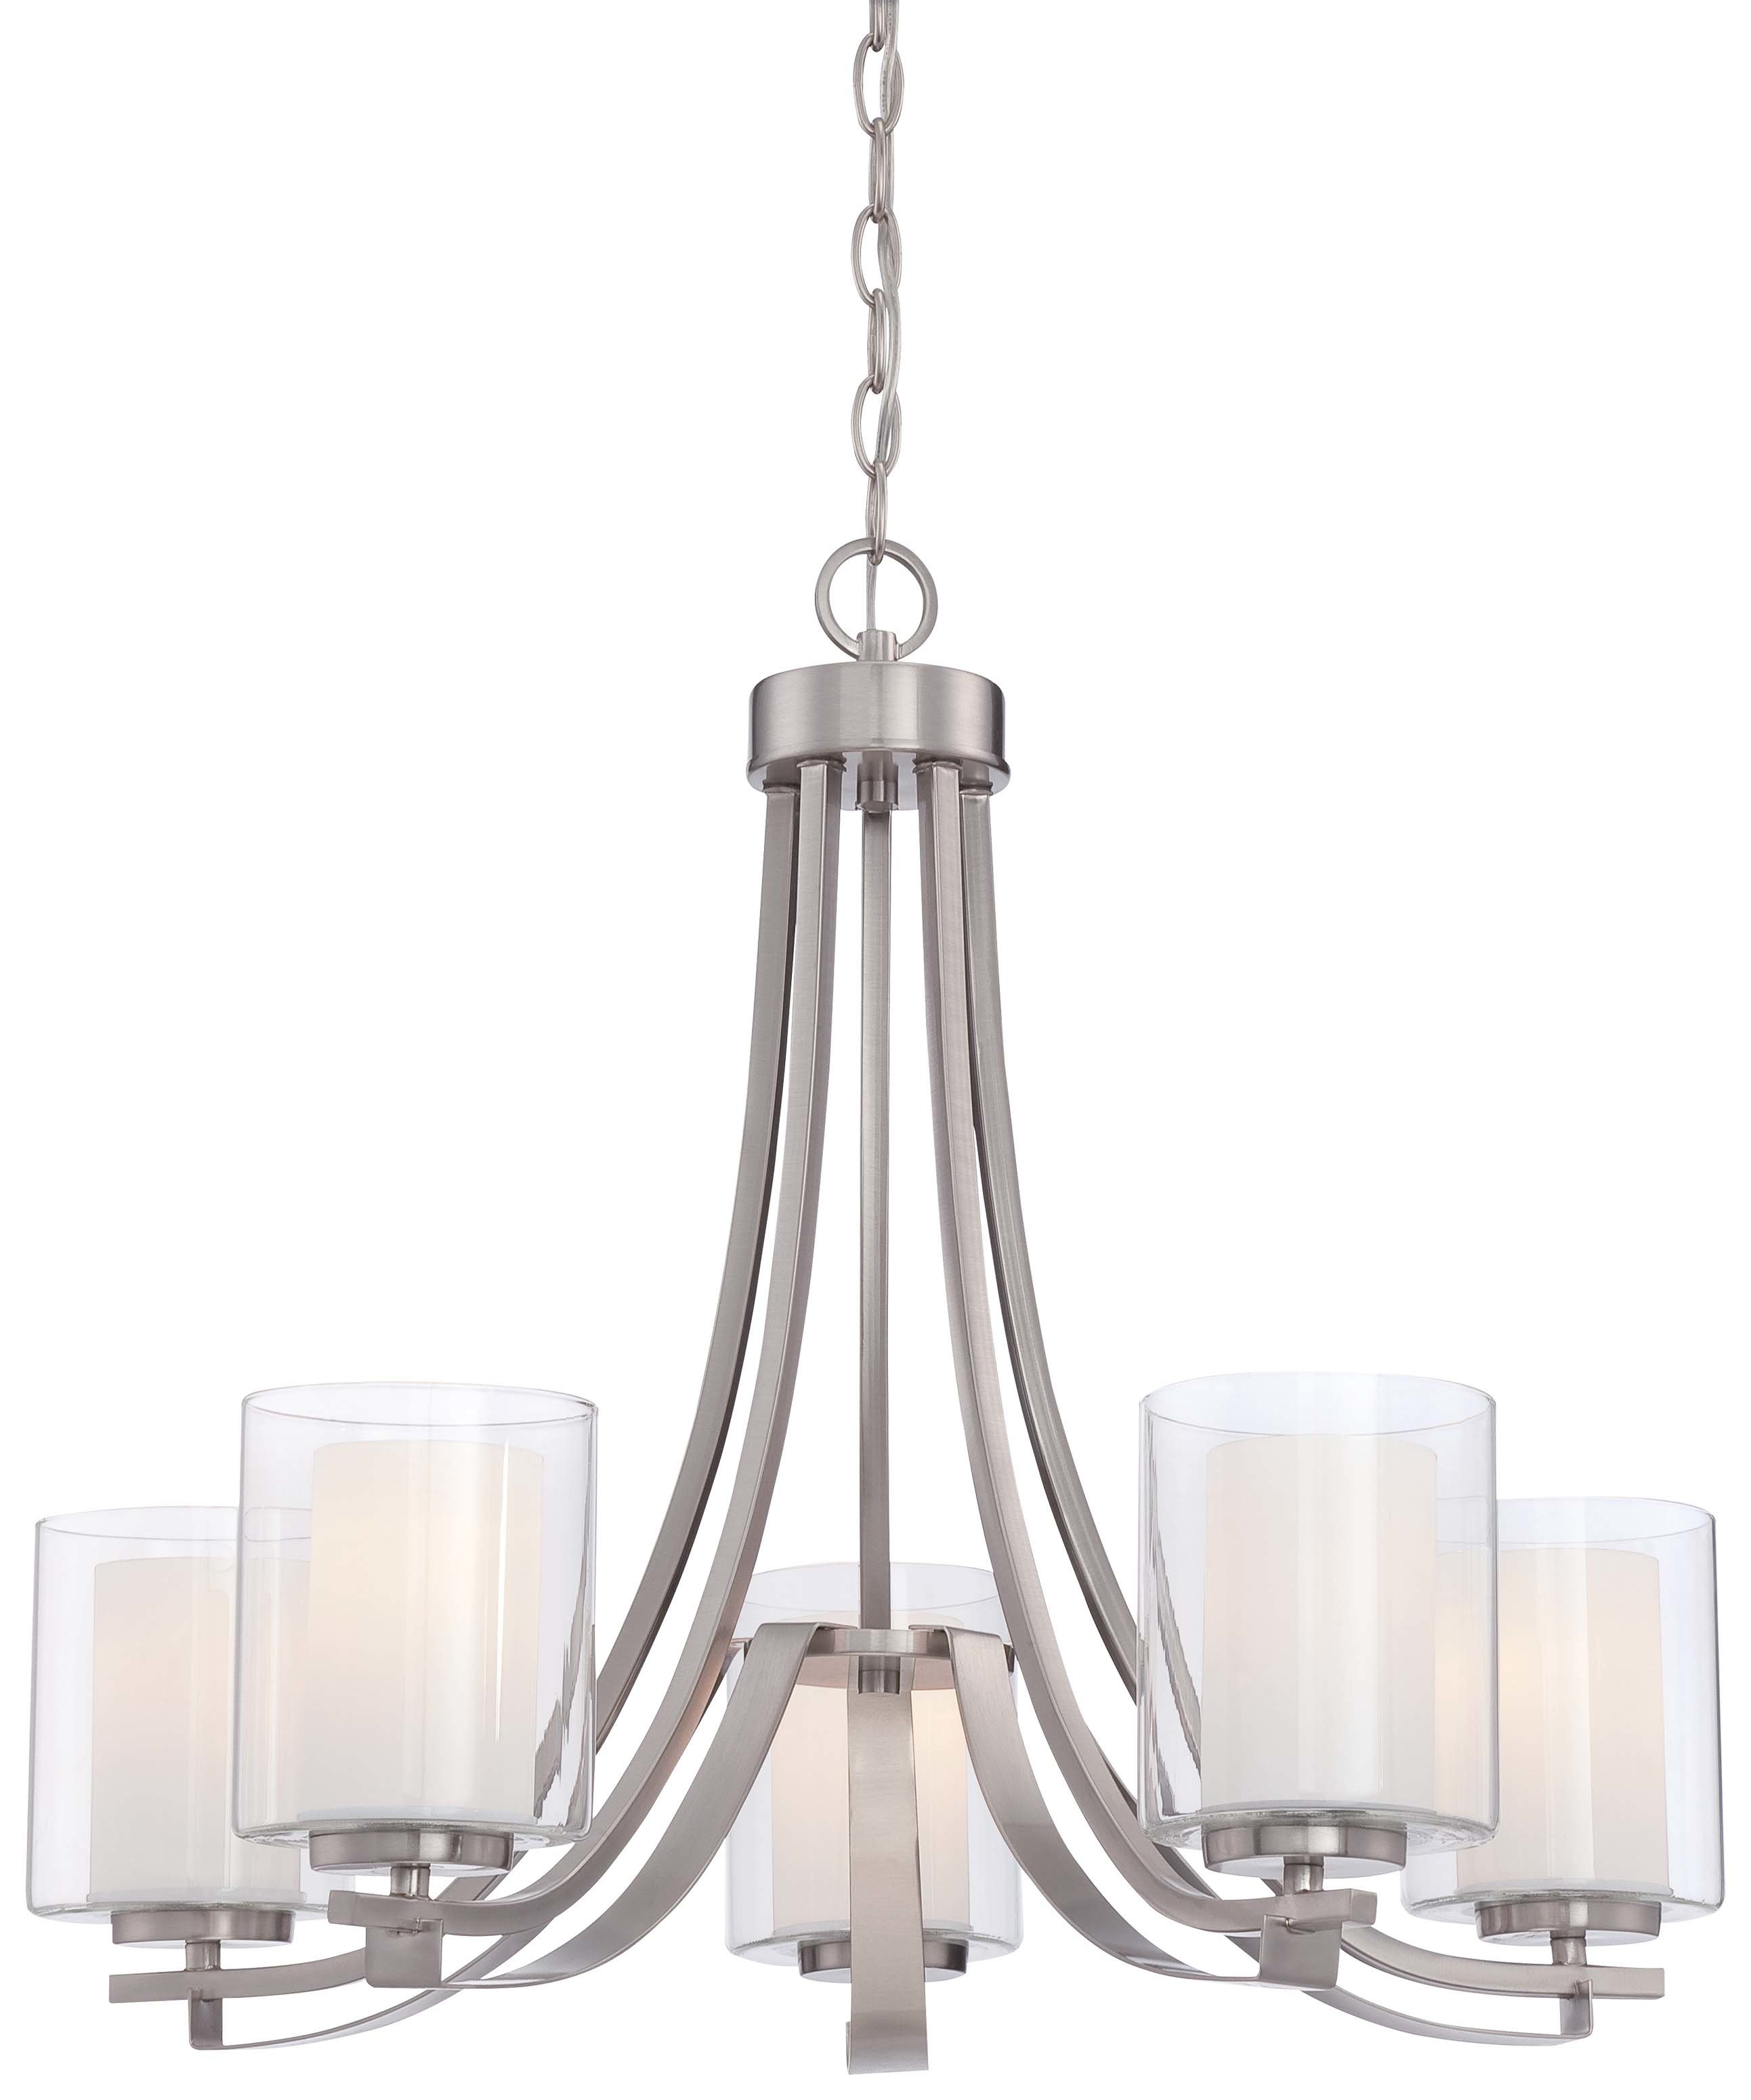 Demby 5 Light Shaded Chandelier For Crofoot 5 Light Shaded Chandeliers (View 9 of 30)